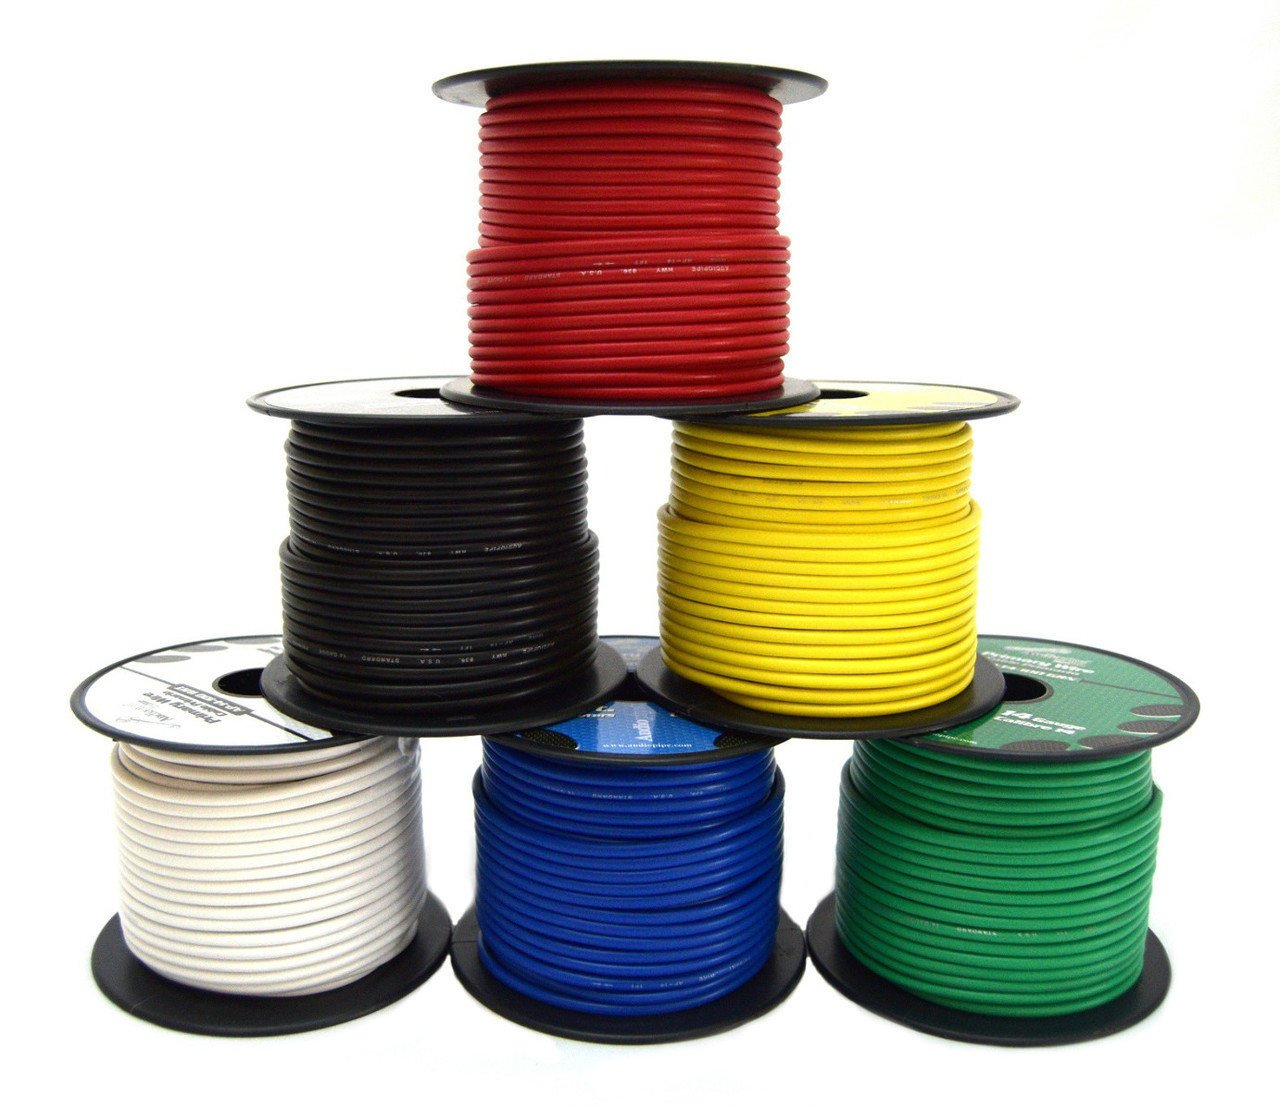 14 GA Single Conductor Stranded Remote Wire 6 Rolls Primary Colors 12V 100'FT EA by Audiopipe